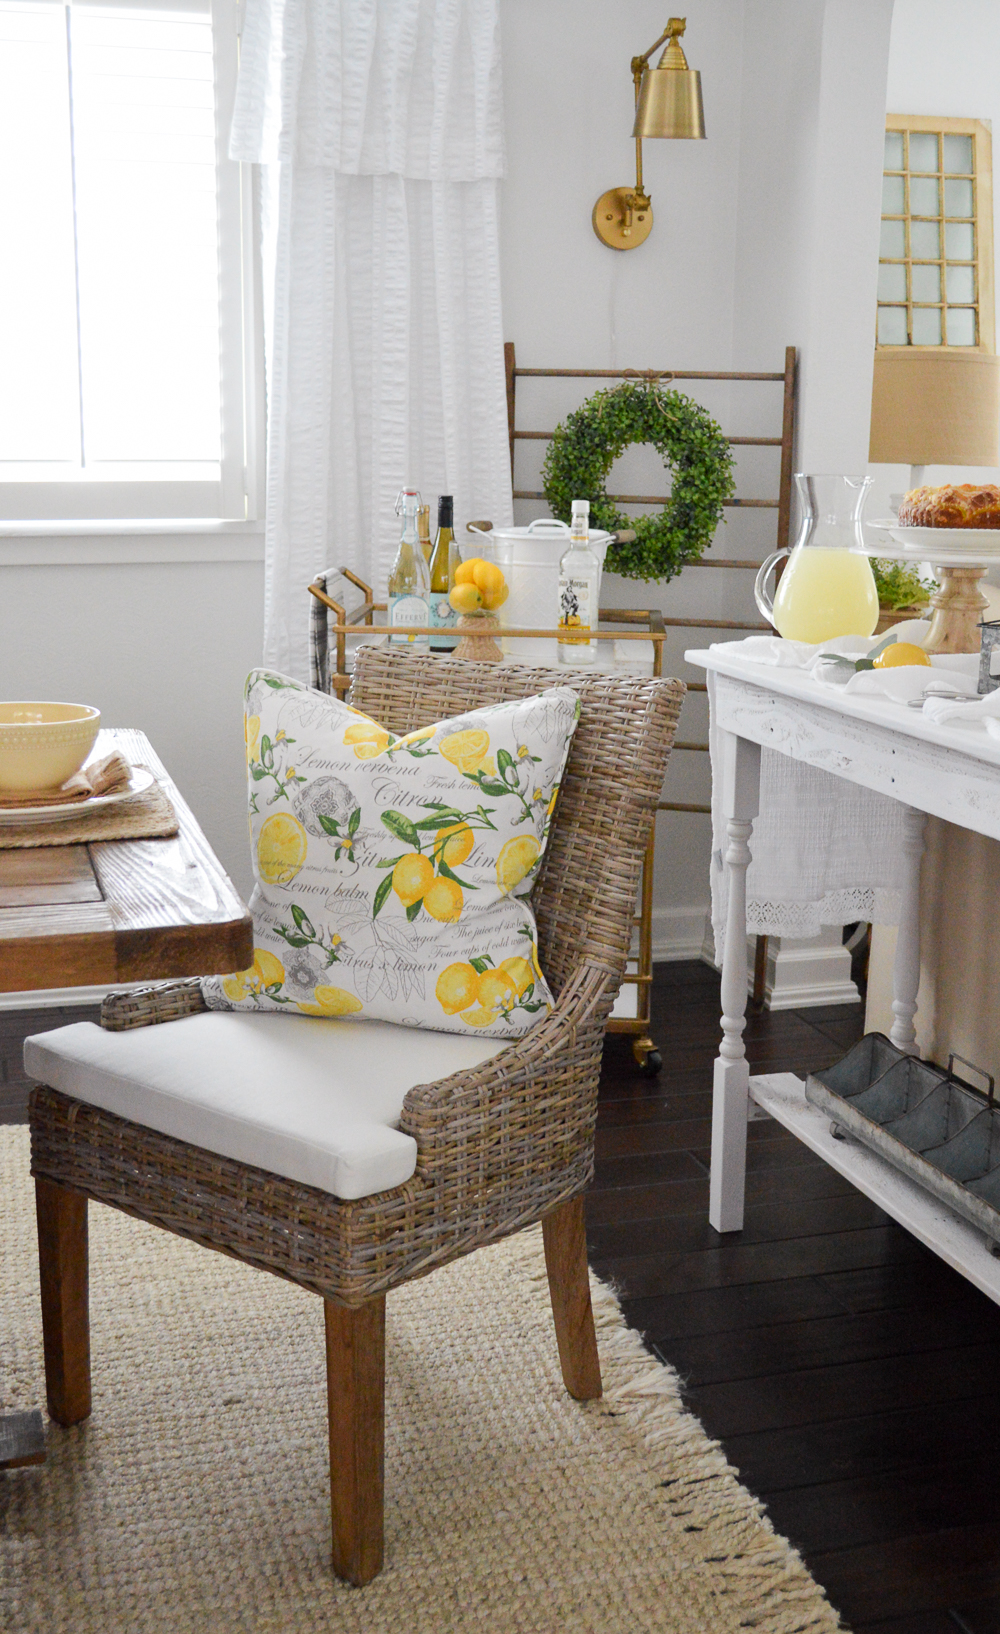 farm table dining in a cottage home - lemon pillow, woven chair, brass wall sconce, bar cart.